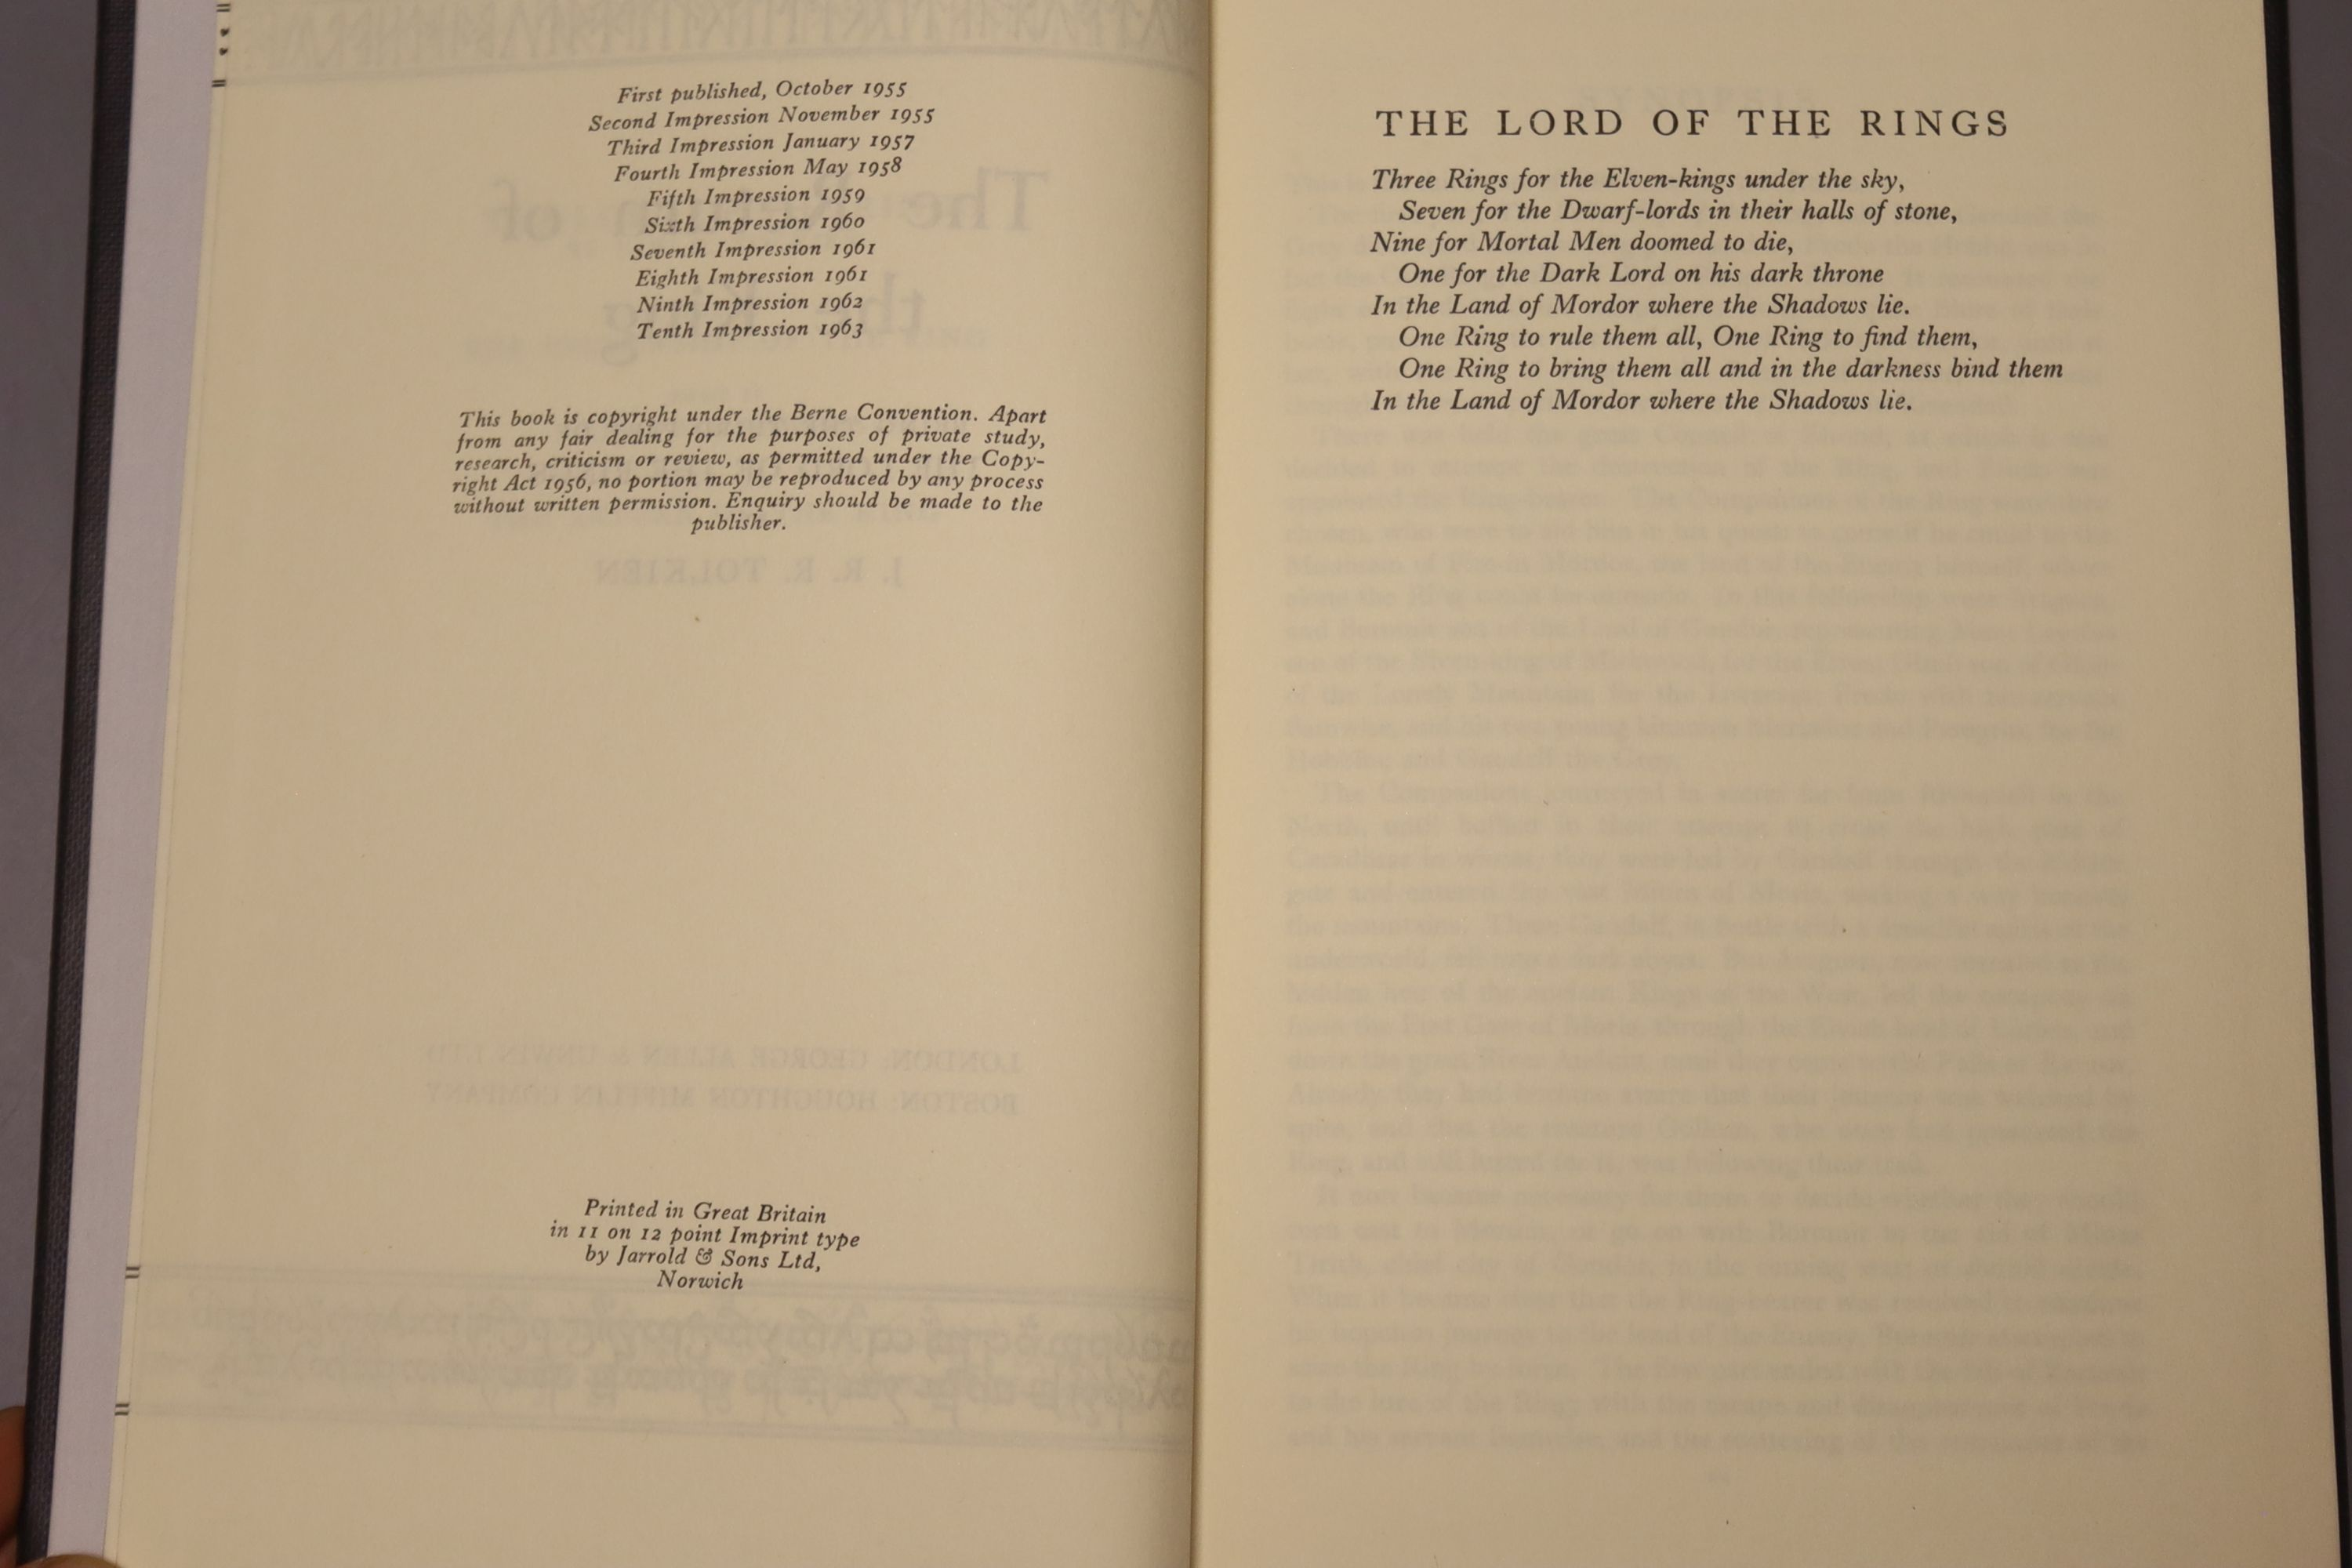 Tolkein, J.R.R. - The Fellowship of the Ring, The Two Towers, The Return of the King 1963, tenth and - Image 10 of 11